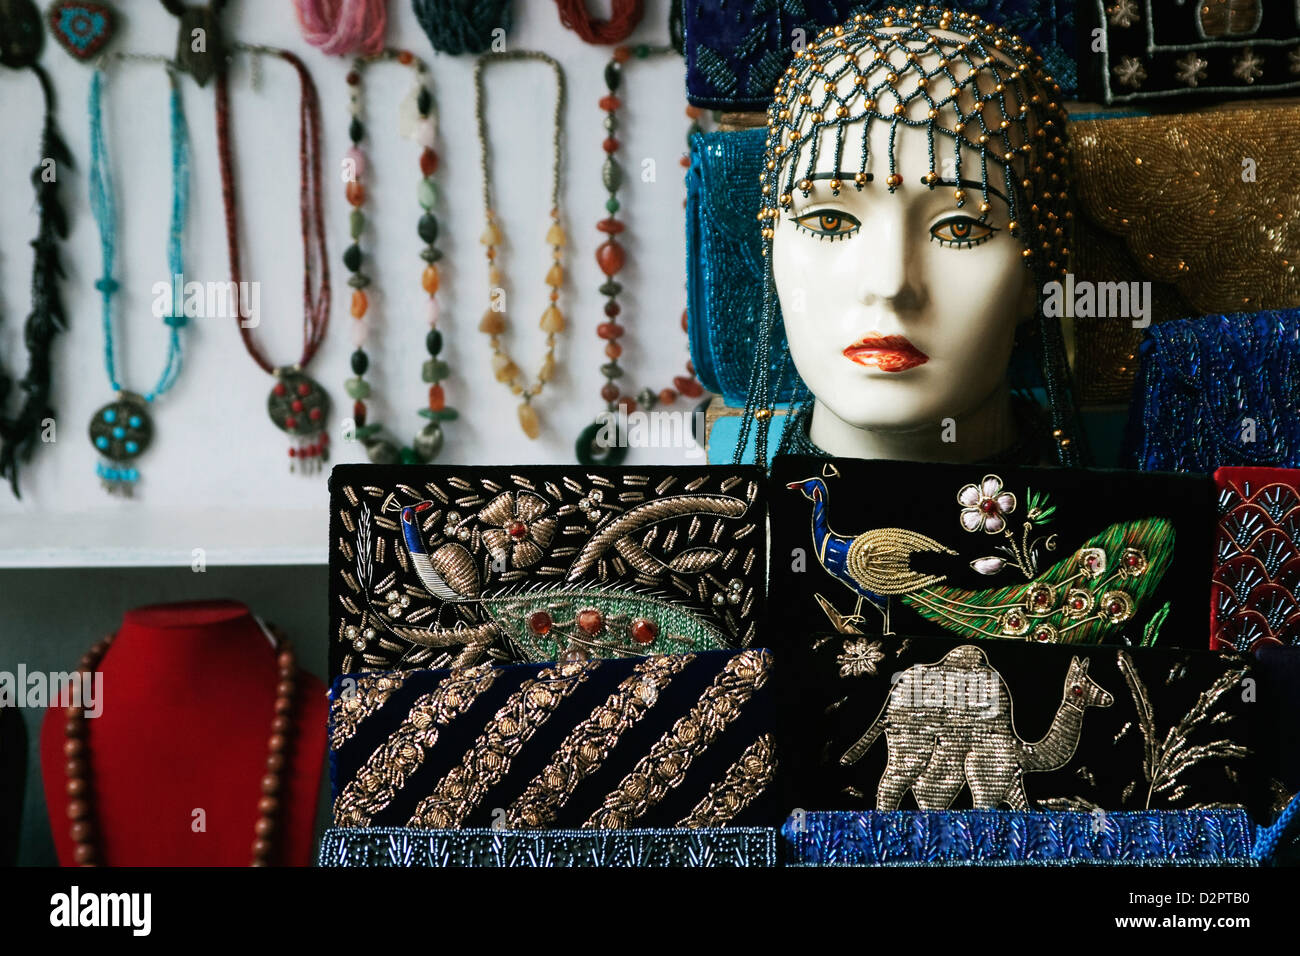 Showpieces with necklaces at a market stall, Delhi, India Stock Photo